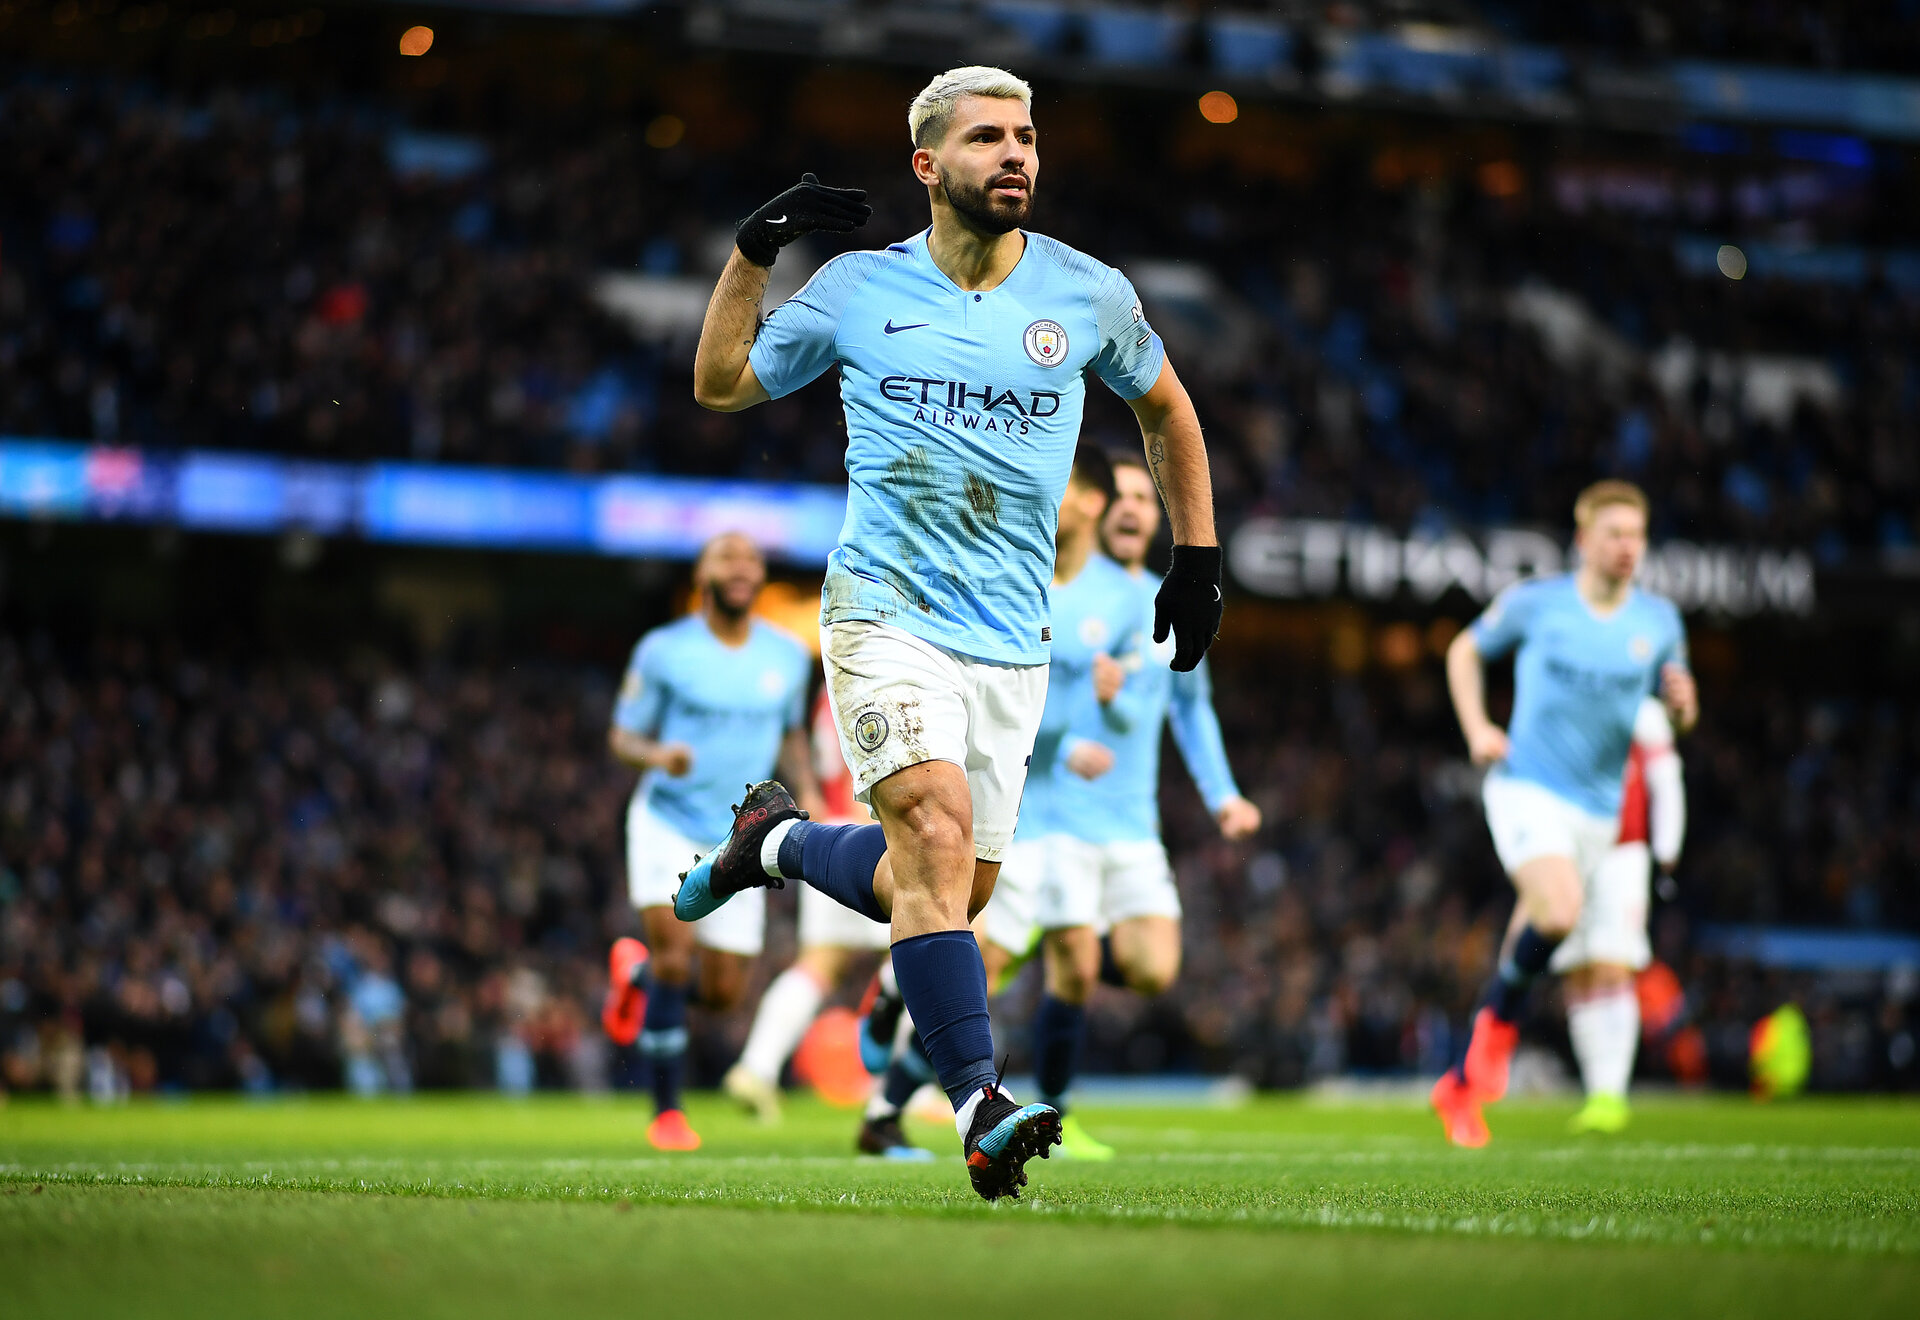 MANCHESTER, ENGLAND - FEBRUARY 03: Sergio Aguero of Manchester City celebrates his first goal during the Premier League match between Manchester City and Arsenal FC at Etihad Stadium on February 03, 2019 in Manchester, United Kingdom. (Photo by Clive Mason/Getty Images)